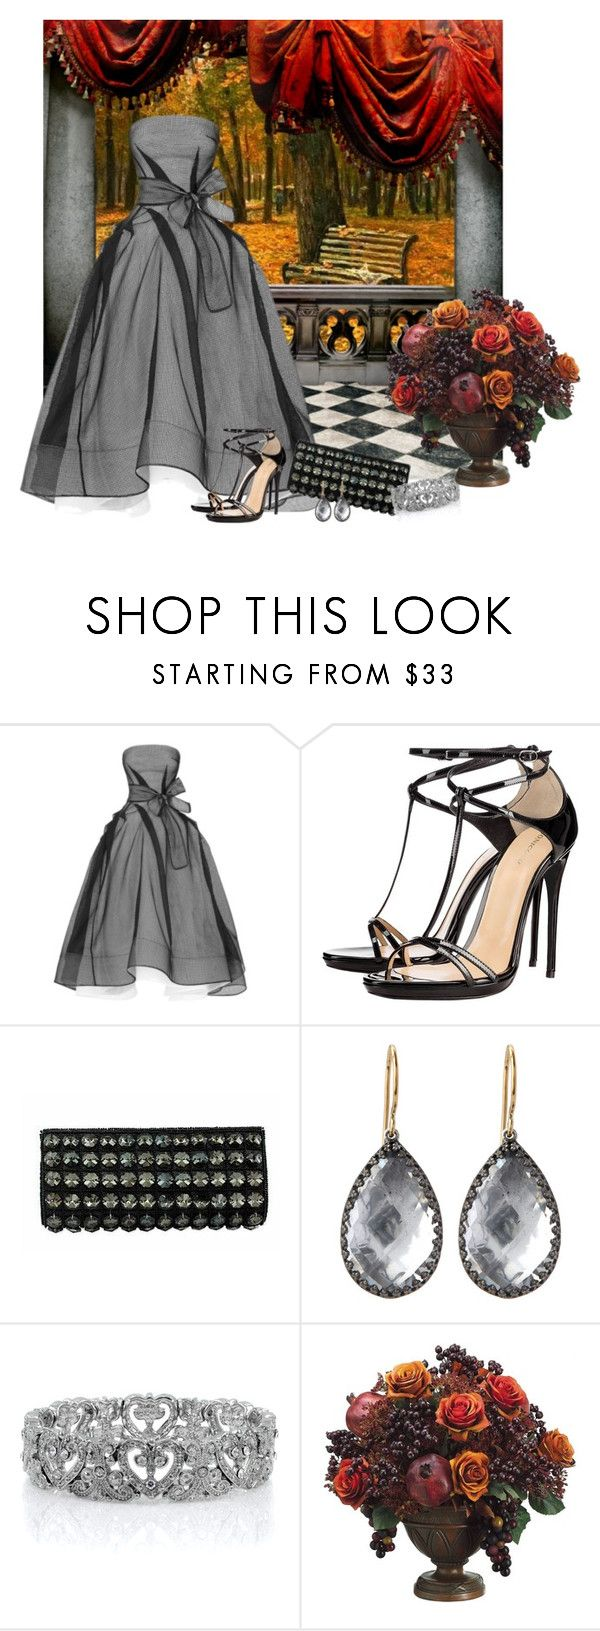 """Untitled #441"" by whiteflower7 ❤ liked on Polyvore featuring Maticevski, NOVICA, Larkspur & Hawk, Emitations and Allstate Floral"